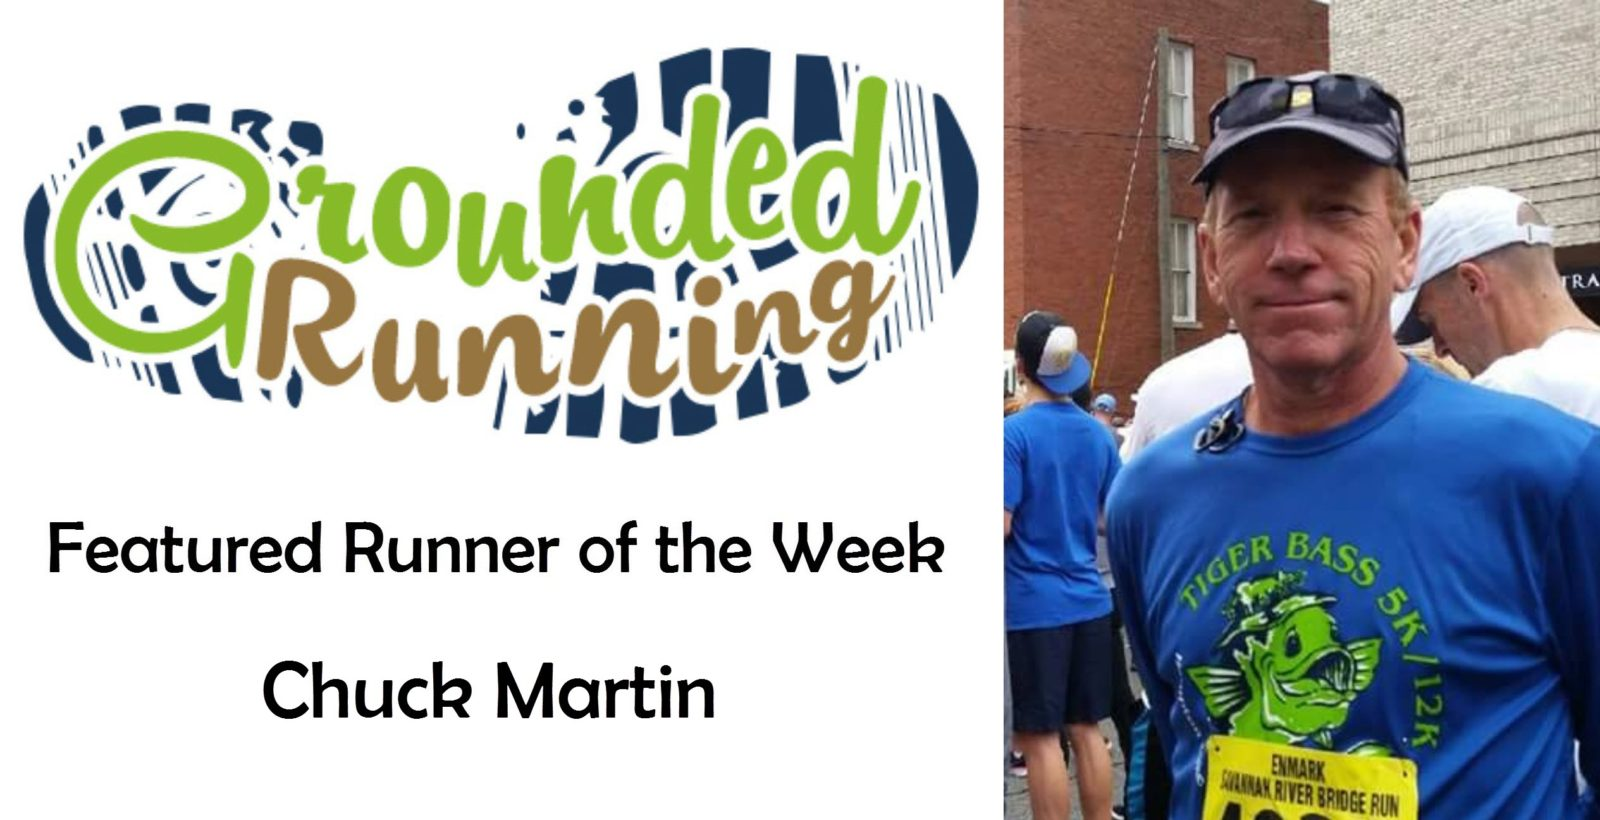 Chuck Martin - Featured Runner of the Week